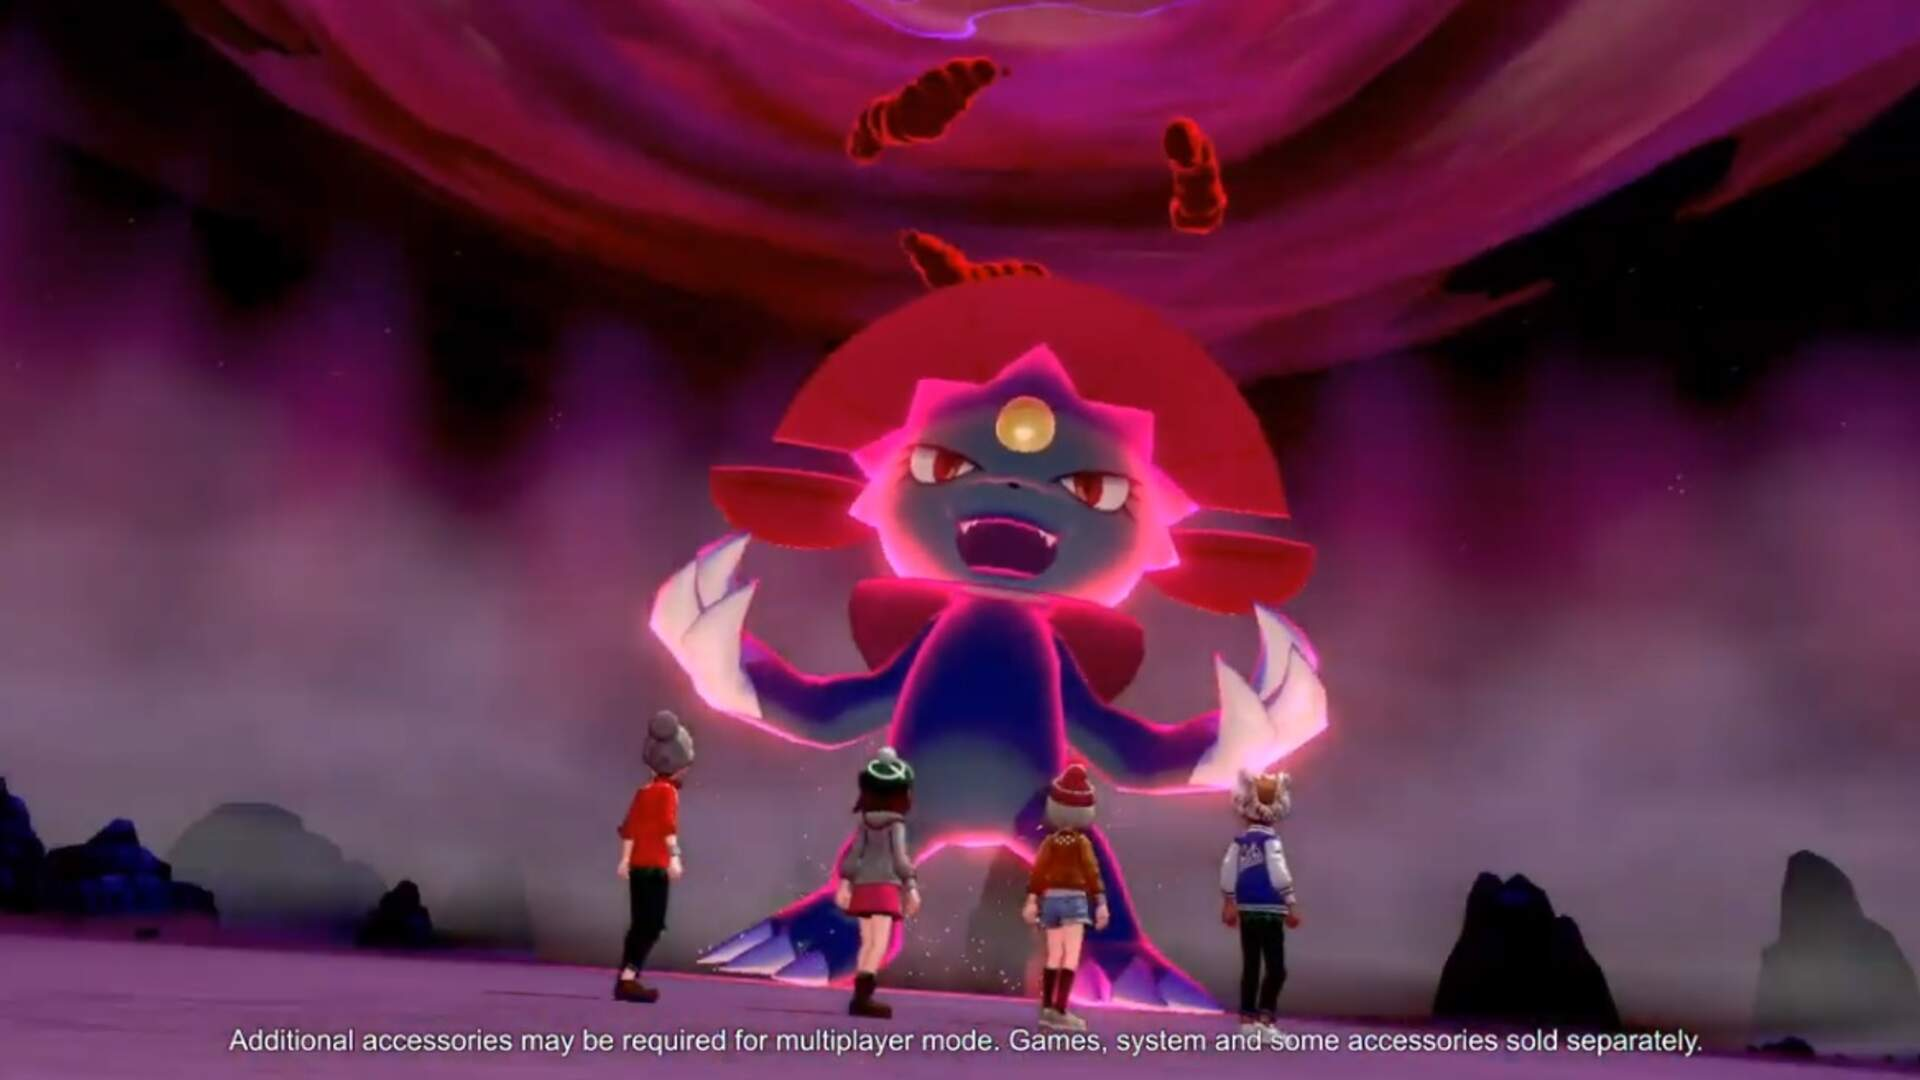 Pokemon Sword and Shield Won't Actually Have 18 Gyms, Game Freak Clarifies